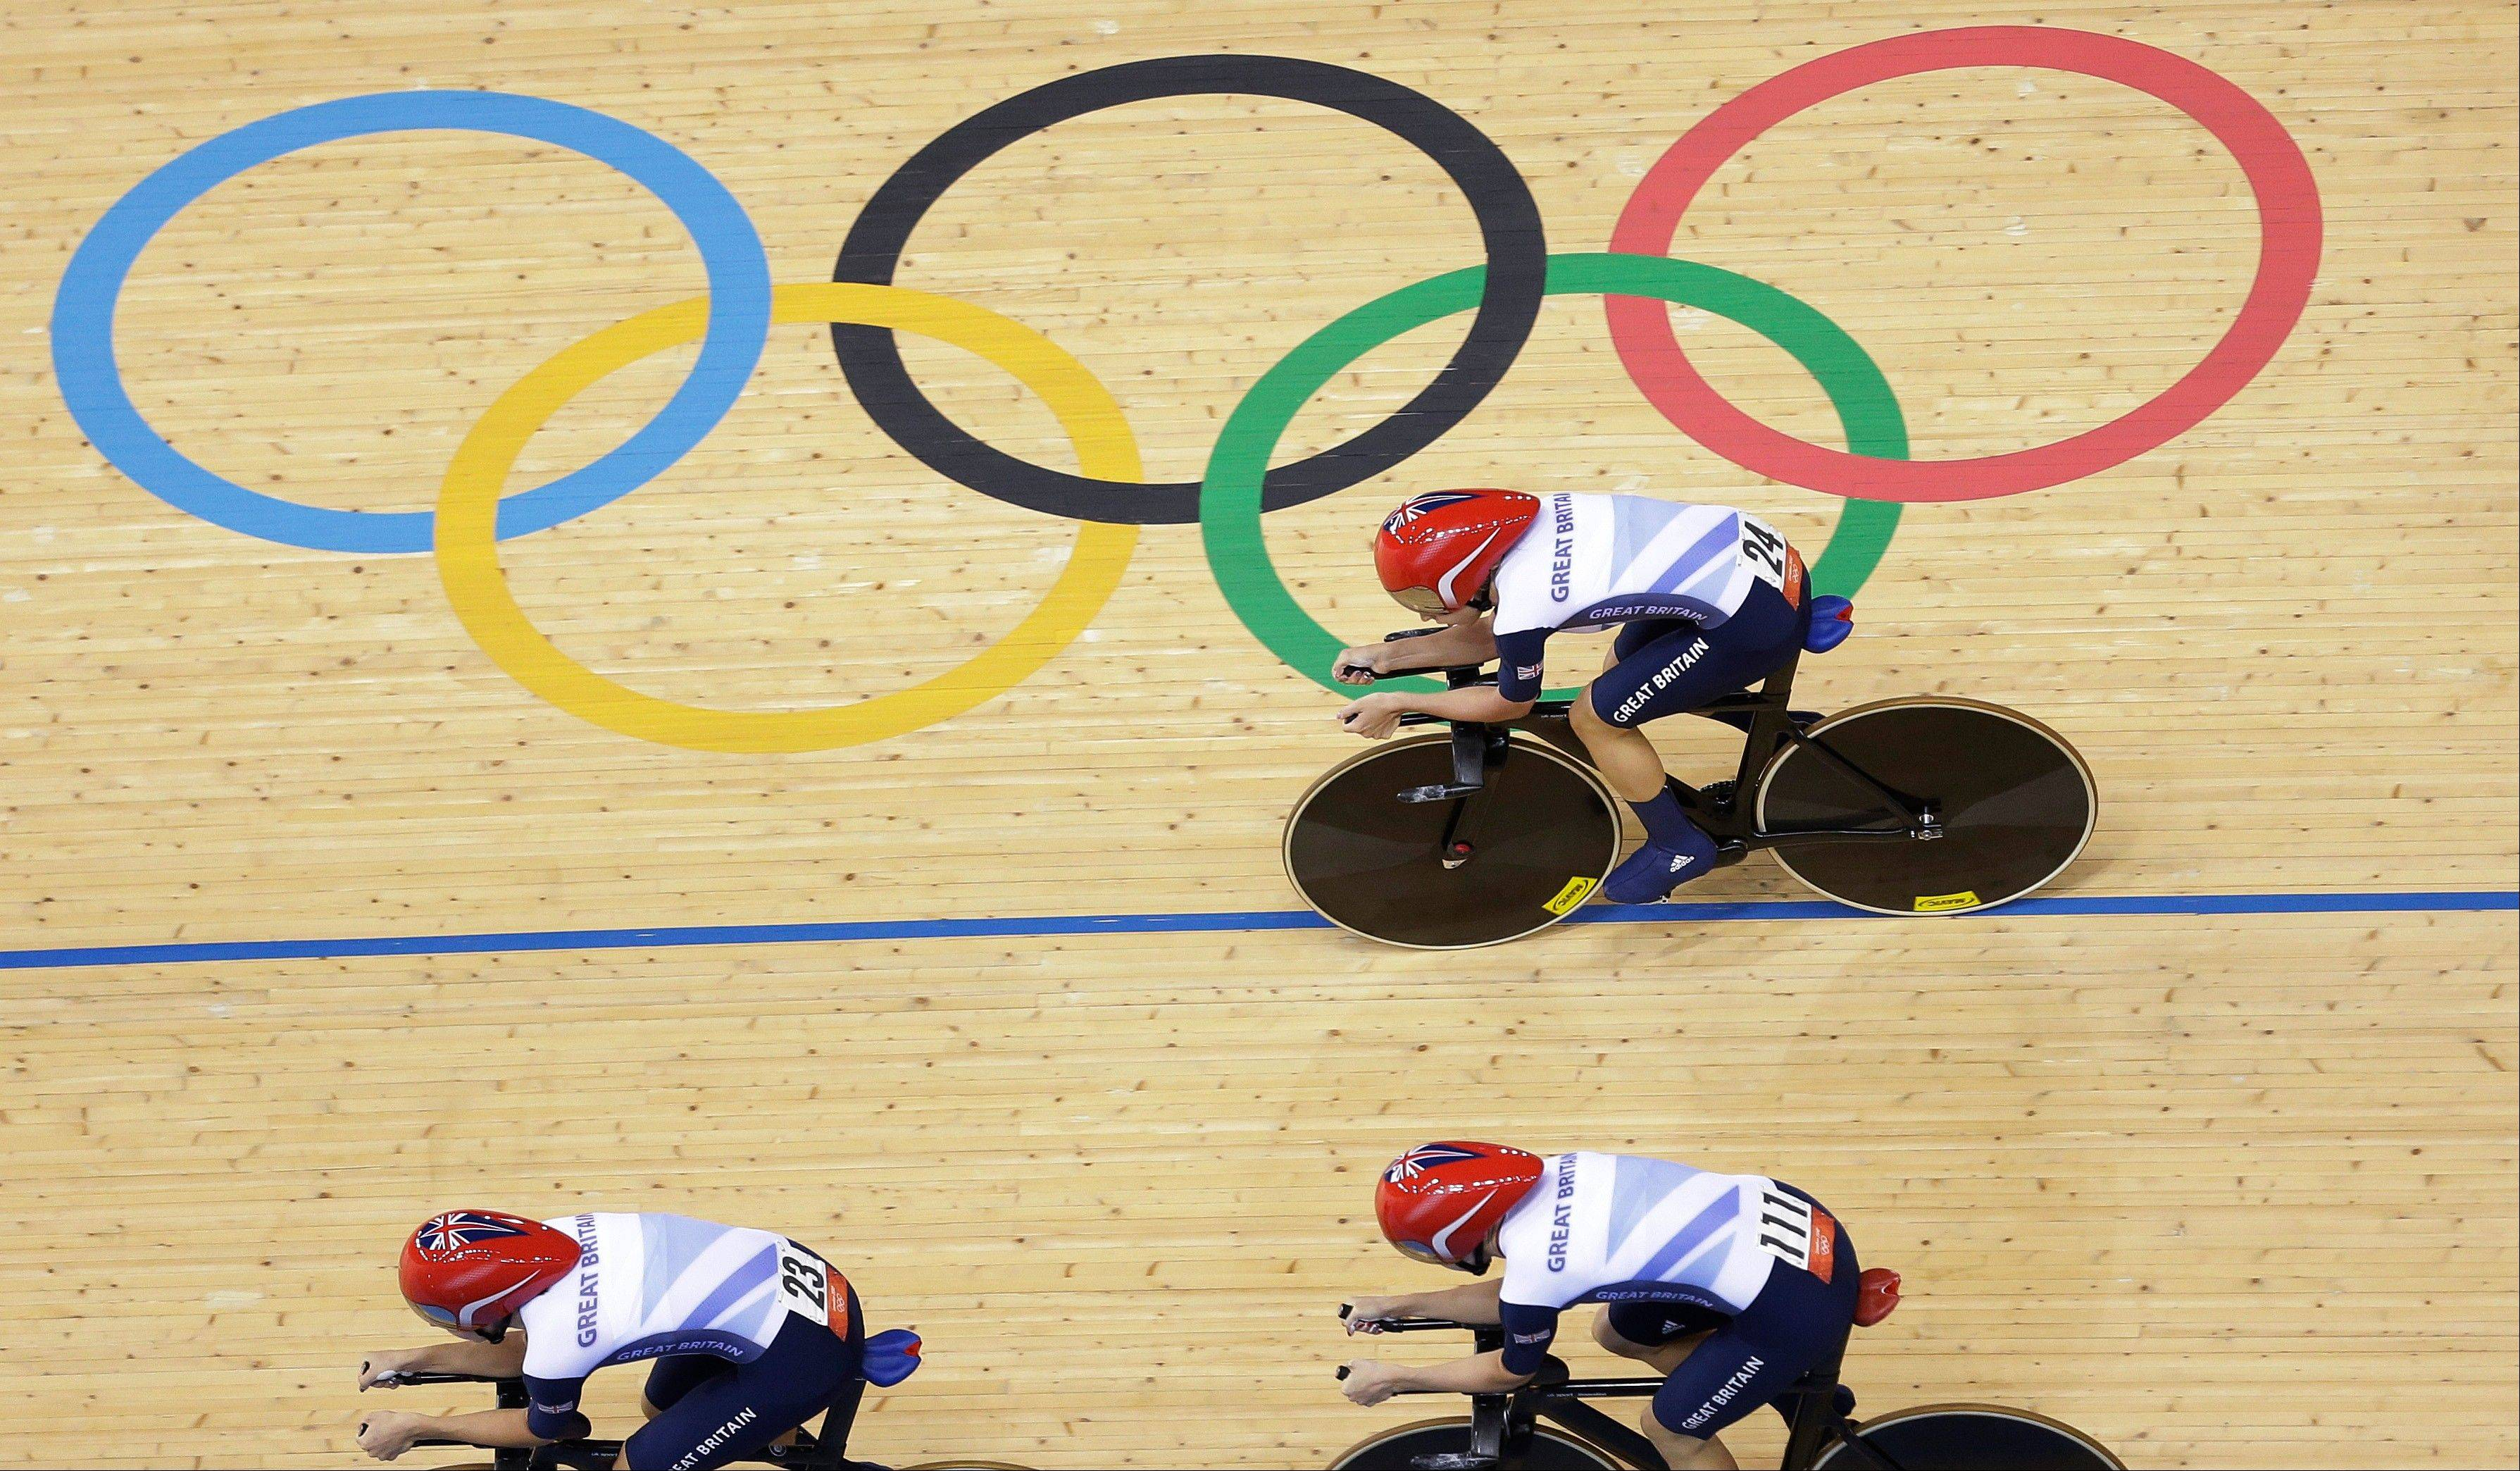 Britain's Dani King, left, leads Joanna Rowsell, bottom right, and Laura Trott to a new world record during the track cycling women's pursuit team event in the velodrome during the 2012 Summer Olympics, Saturday, Aug. 4, 2012, in London. The British women's pursuit team shattered its own world record Saturday while qualifying for the gold medal race against the United States. The team of King, Trott and Rowsell covered the 3,000 meters in 3 minutes, 14.682 seconds, lowering the mark of 3:15.669 that they set the previous day in qualifying.